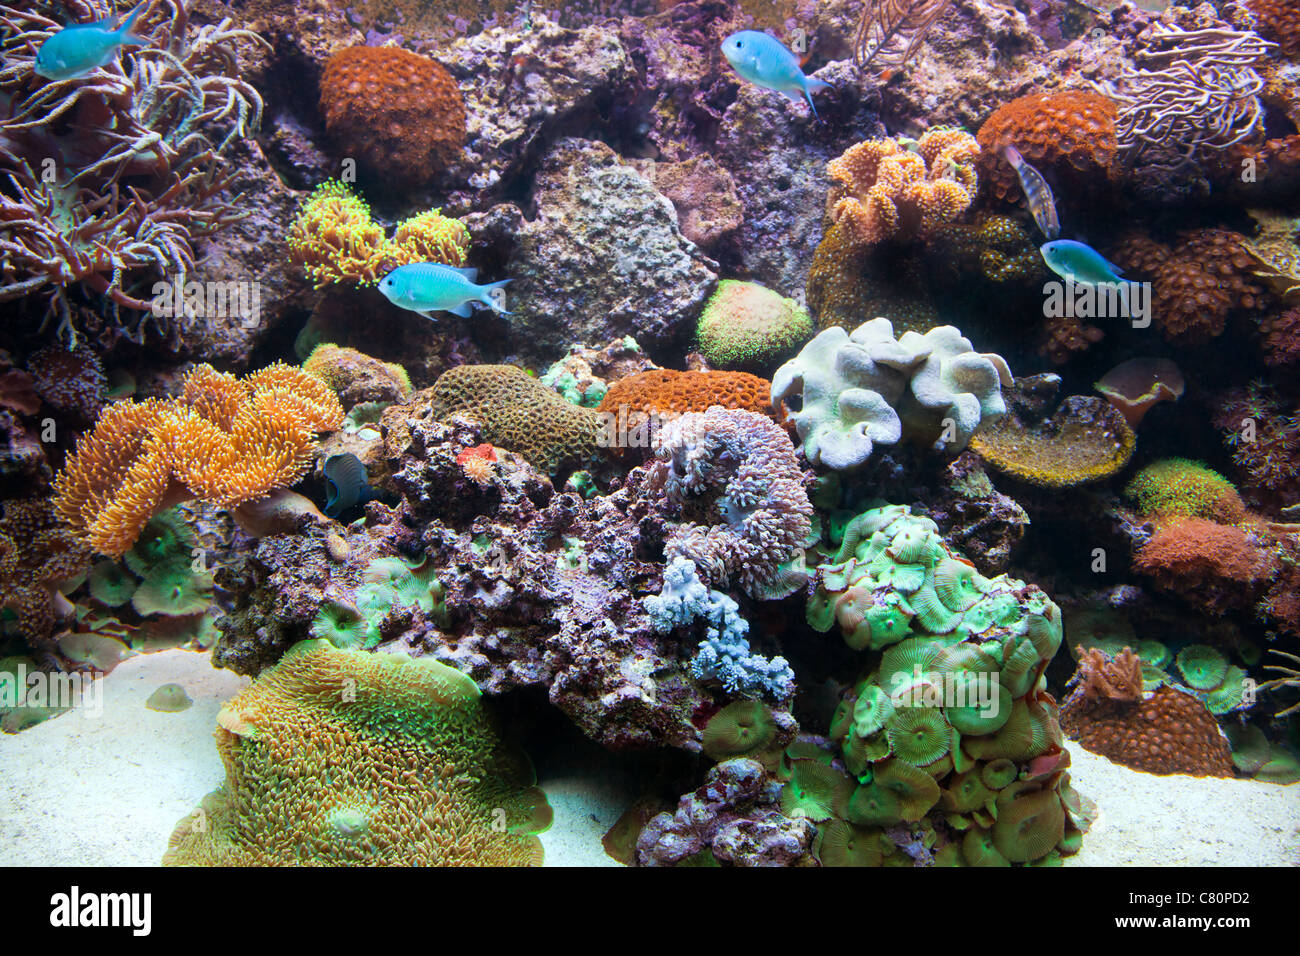 Underwater view in aquarium - with fish and coral reef - Stock Image